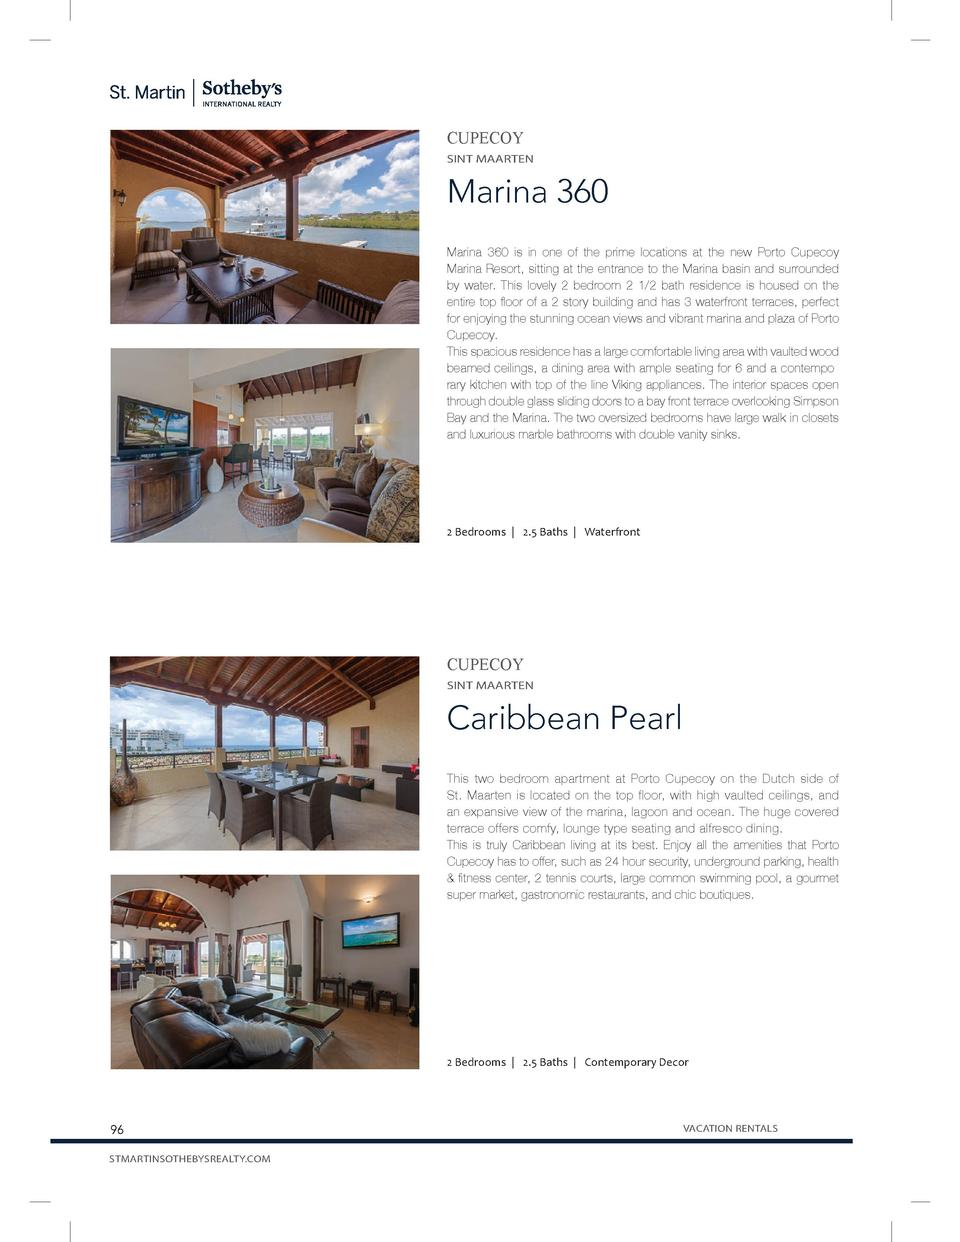 CUPECOY SINT MAARTEN  Marina 360 Marina 360 is in one of the prime locations at the new Porto Cupecoy Marina Resort, sitti...